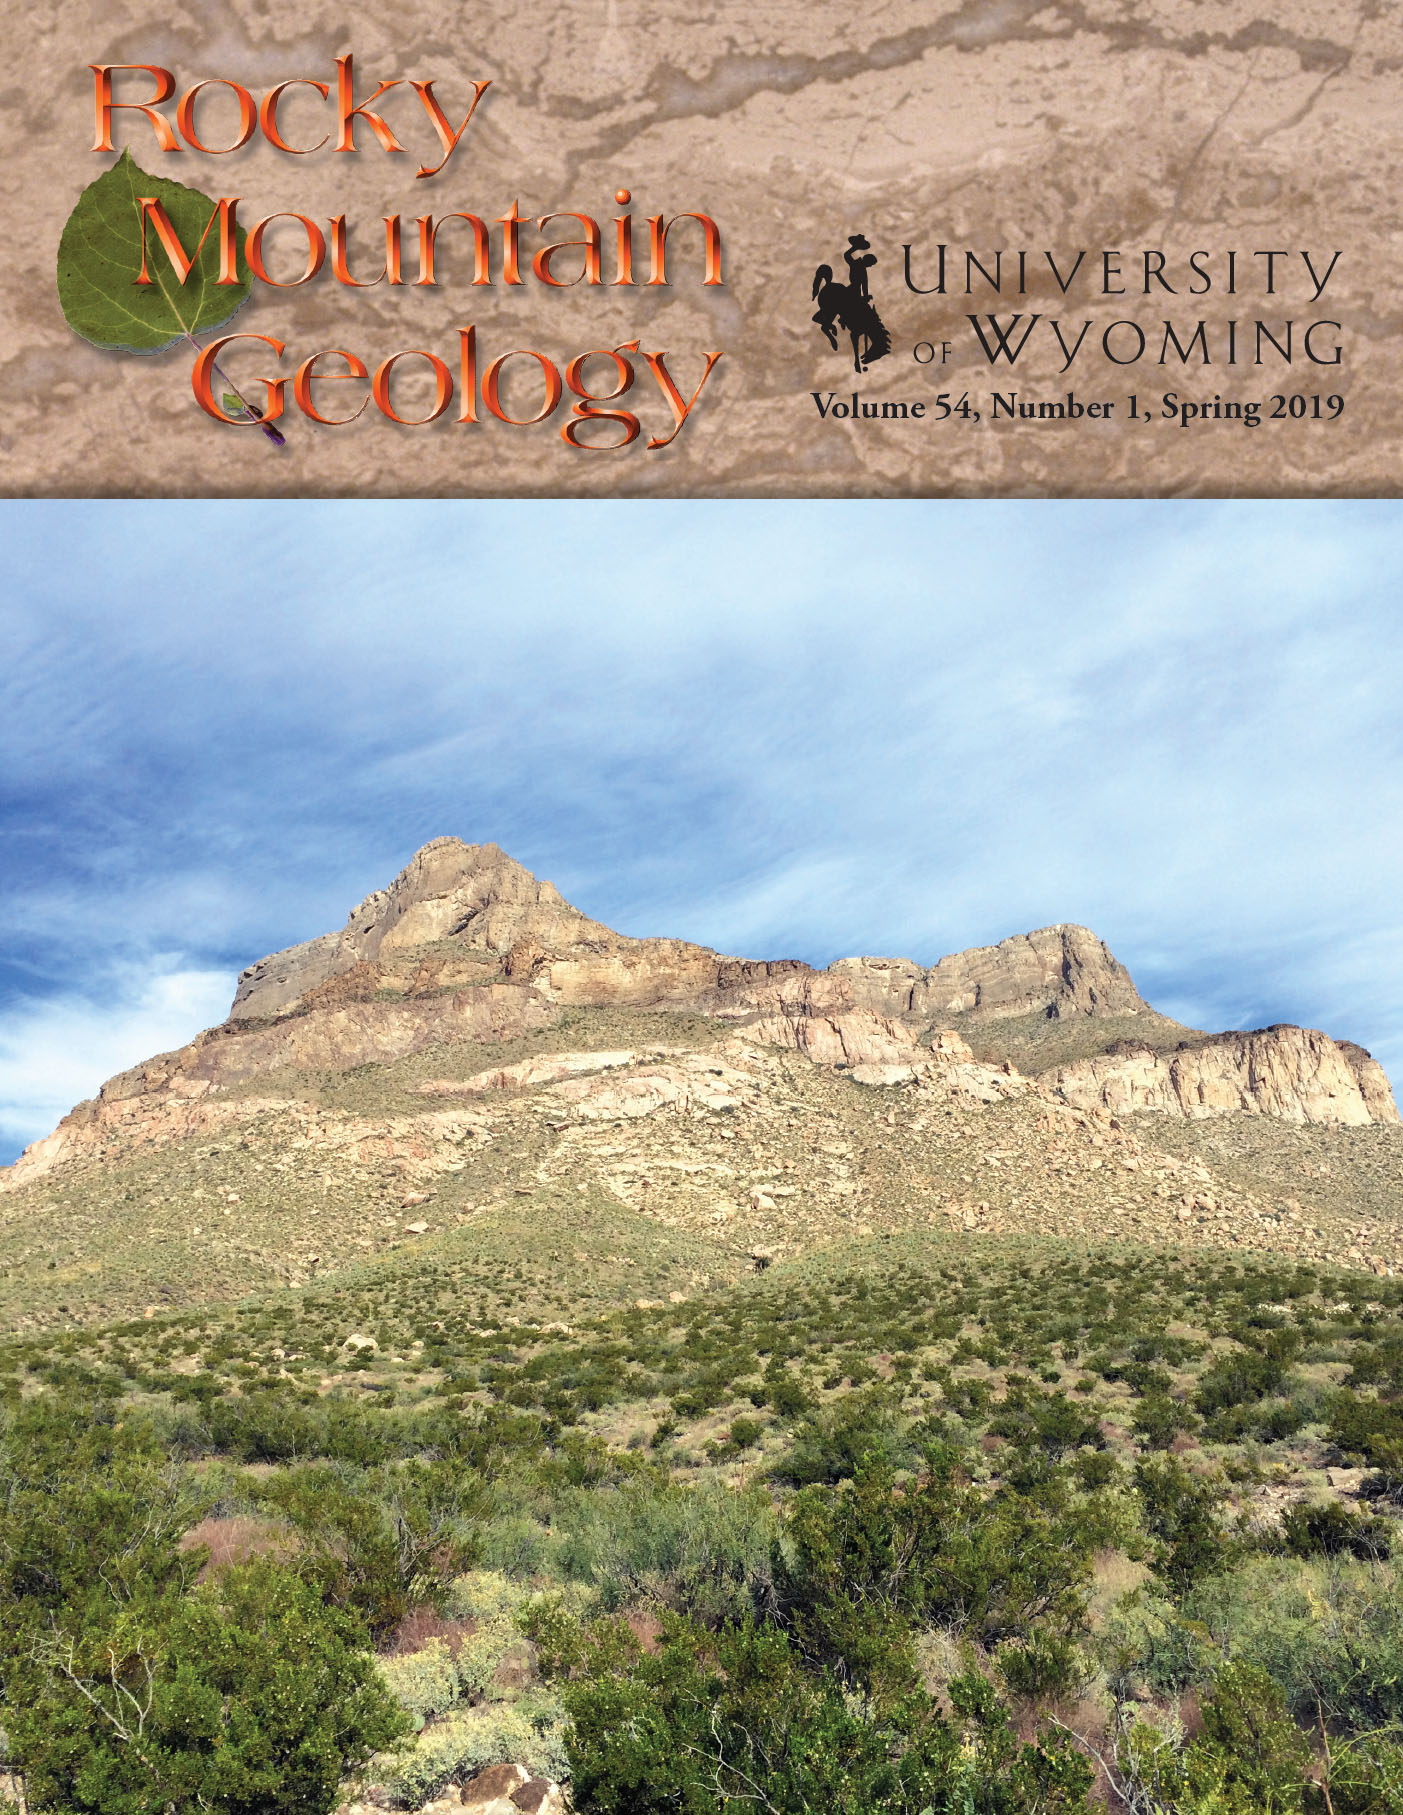 cover of Rocky Mountain Geology vol. 54, no. 1